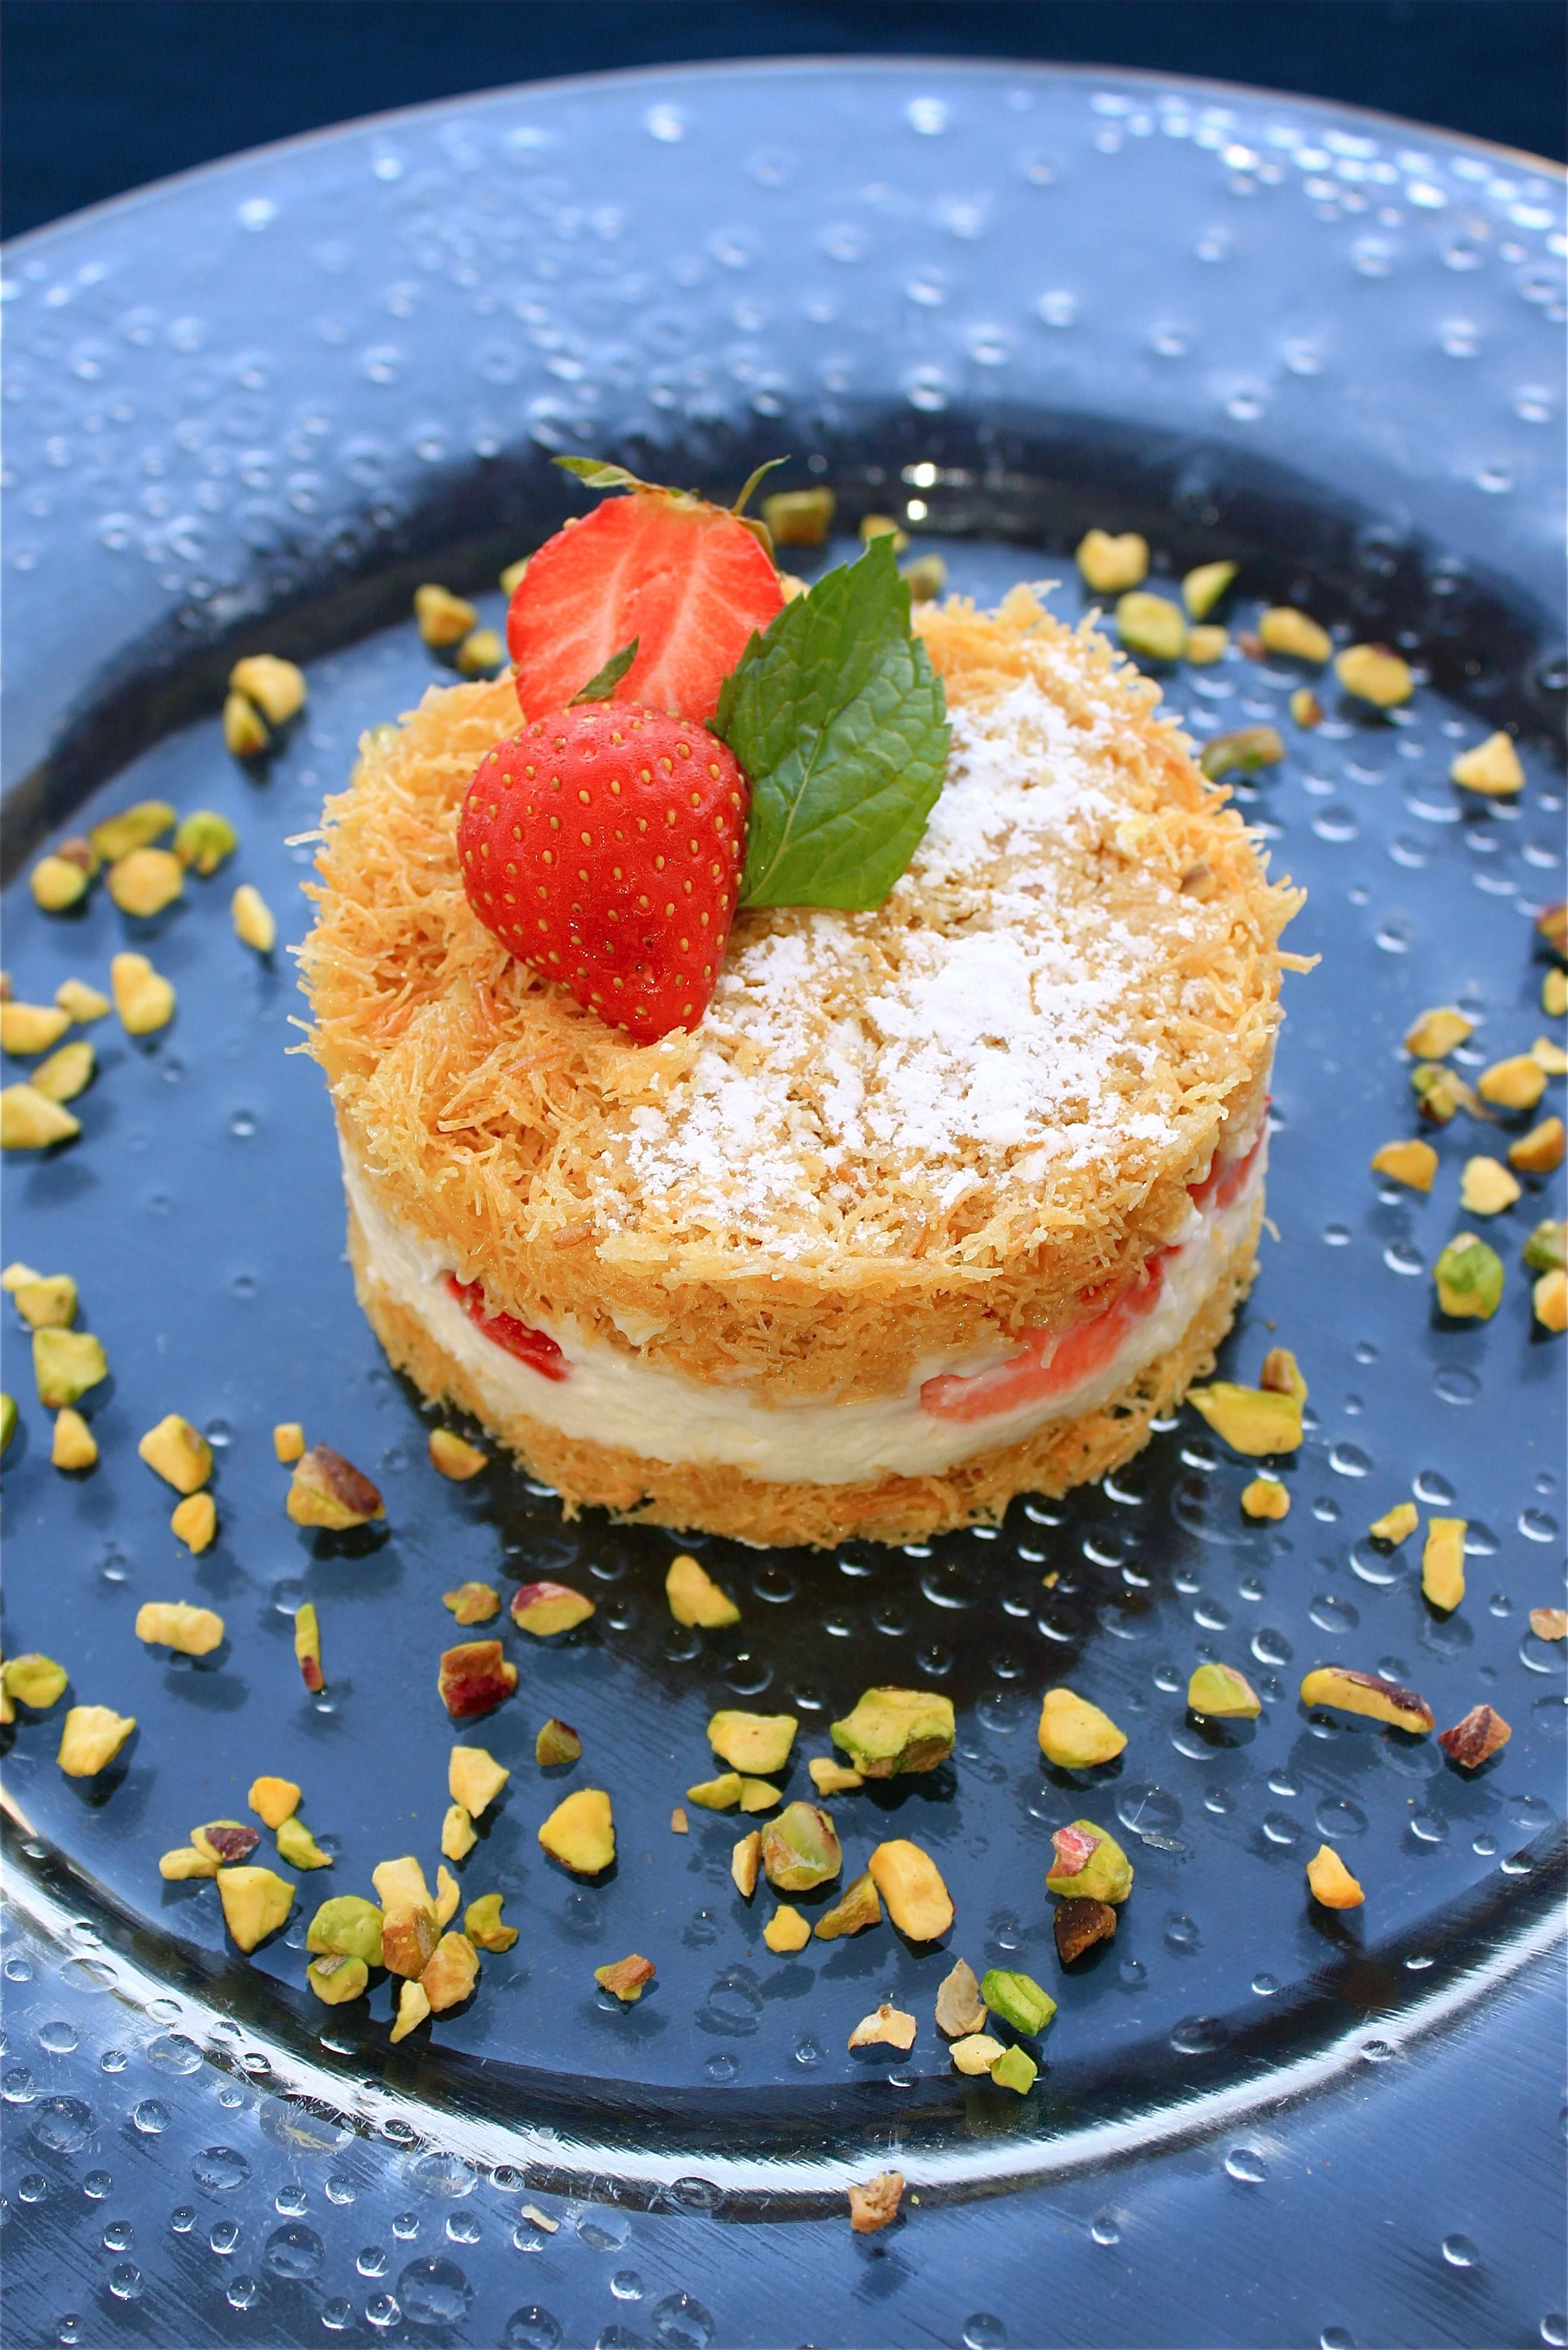 Kunafa is one of the most popular lovely desserts traditionally desserts traditionally eaten during ramadan in arab and middle eastern countries there are many types of fillings in the basic recipe like cream forumfinder Image collections